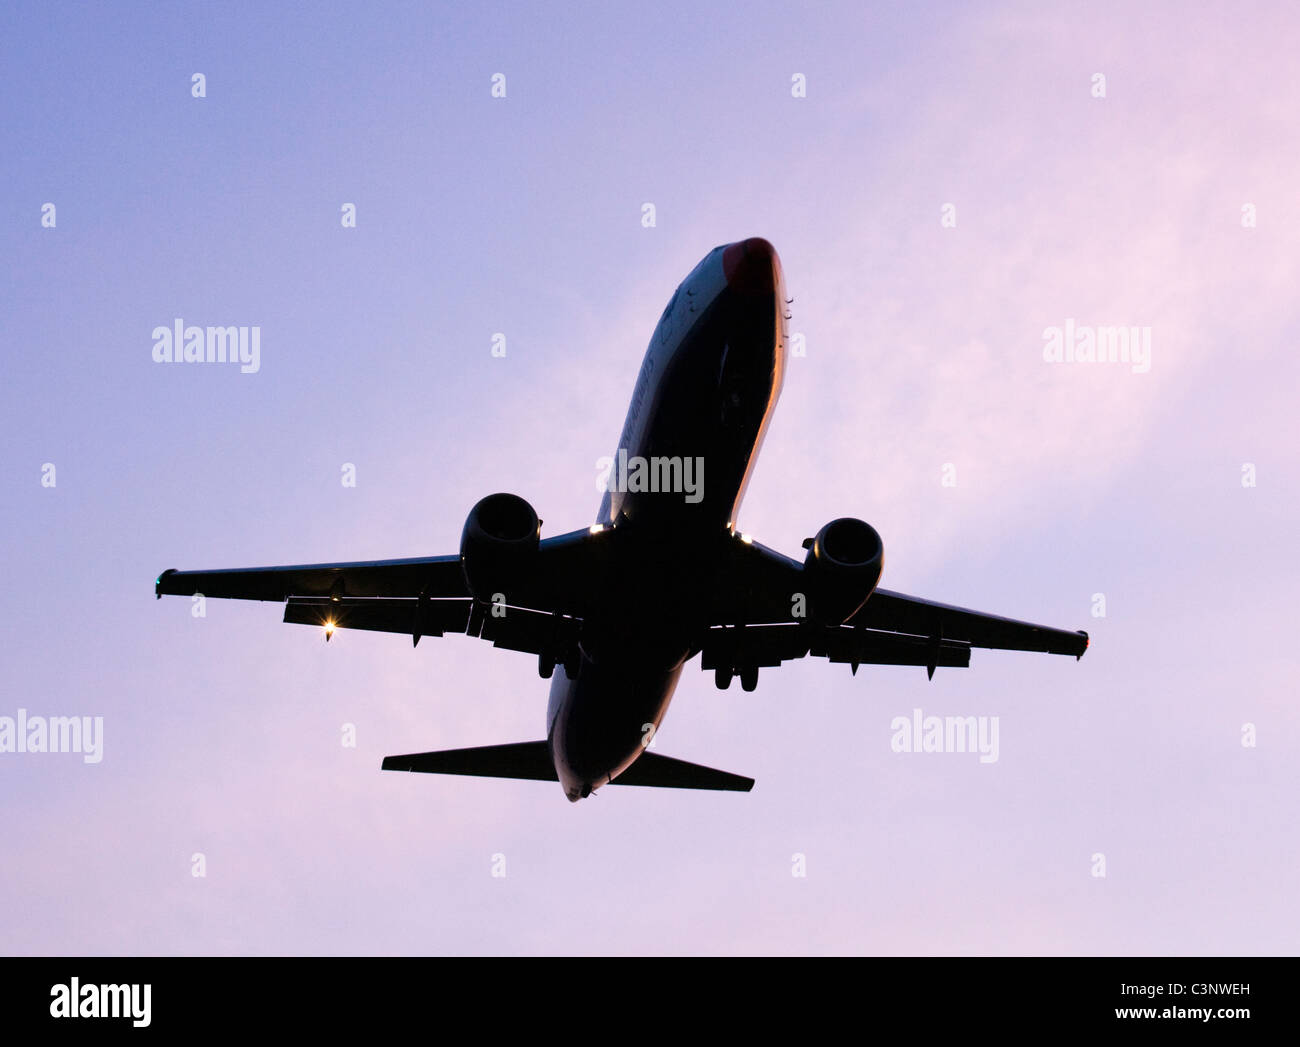 Aircraft about to land. - Stock Image